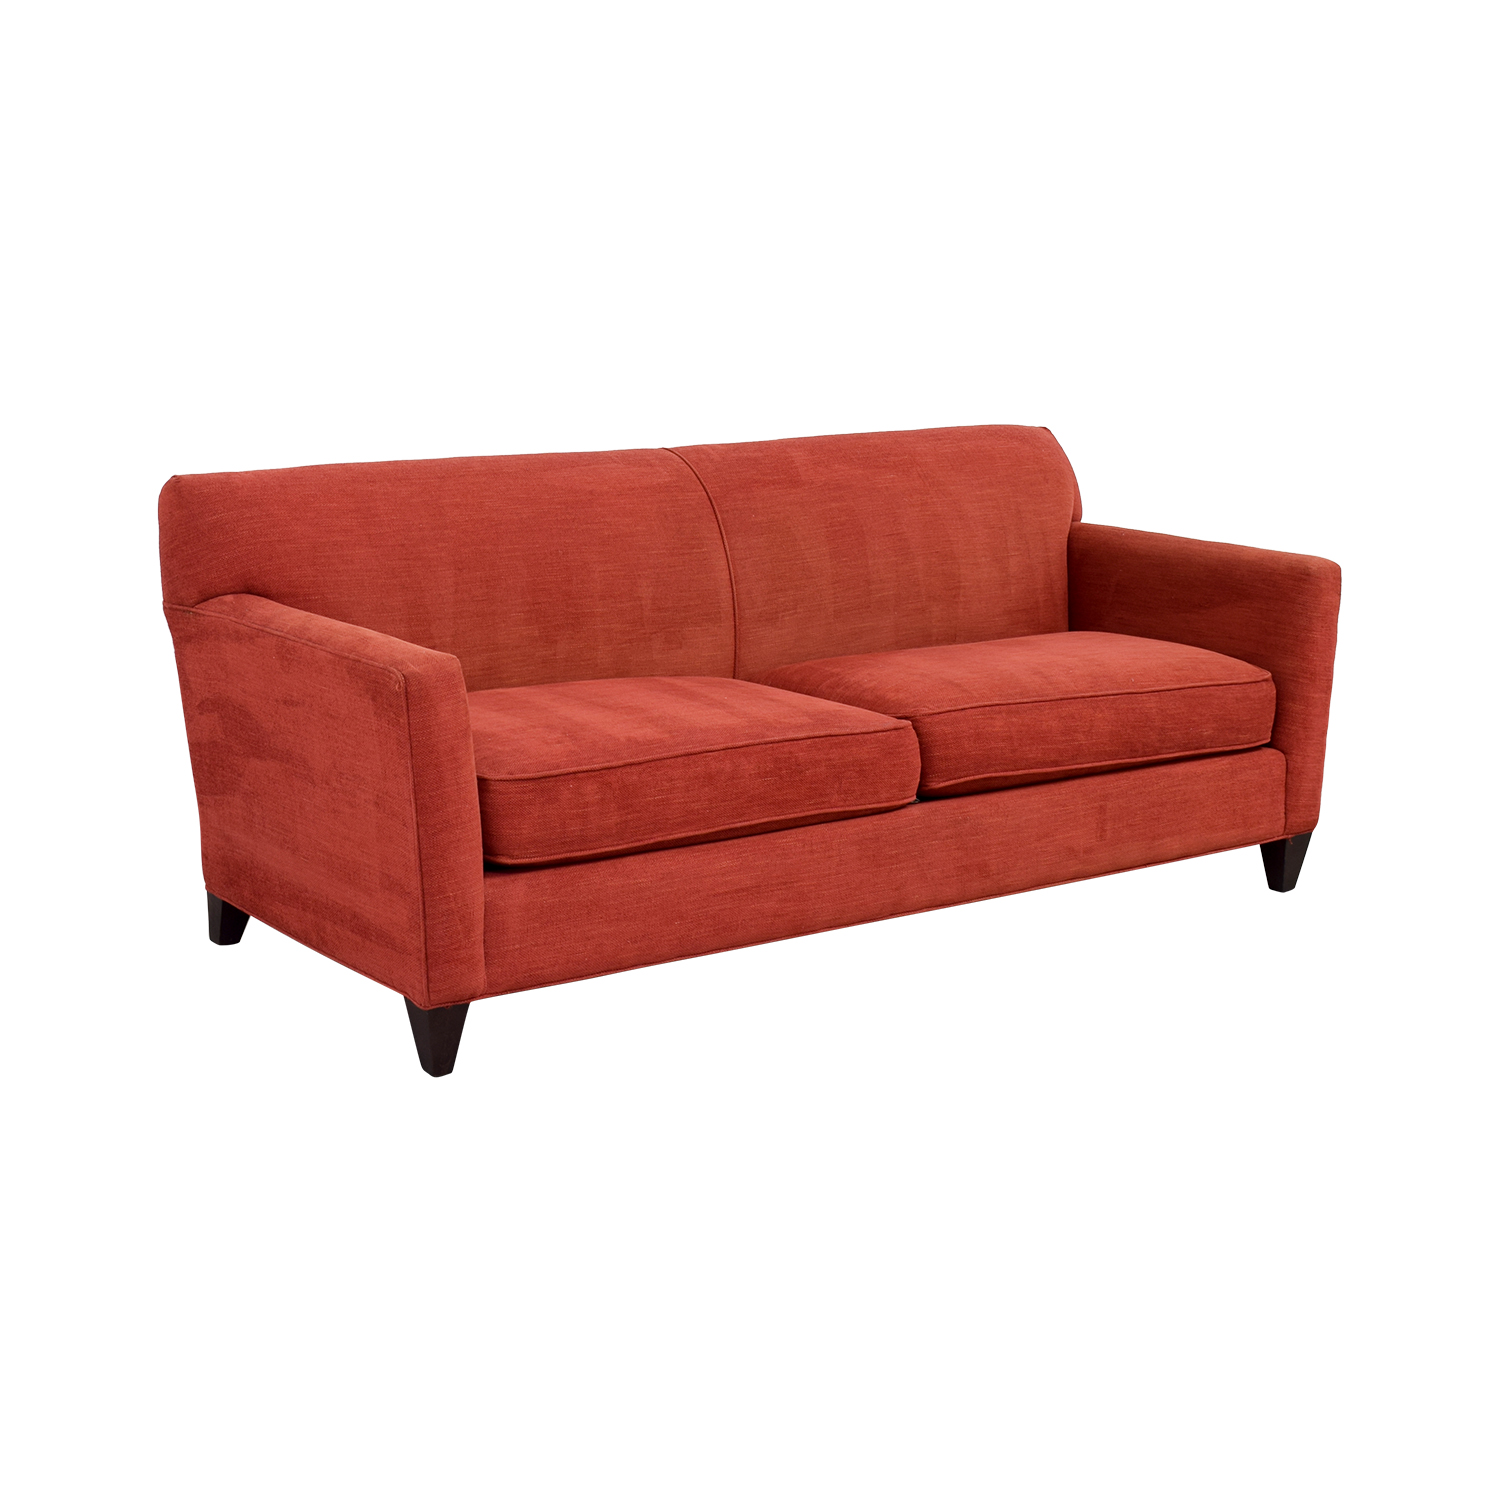 56 off crate barrel crate barrel cardinal red hennessy sofa sofas Red sofas and loveseats